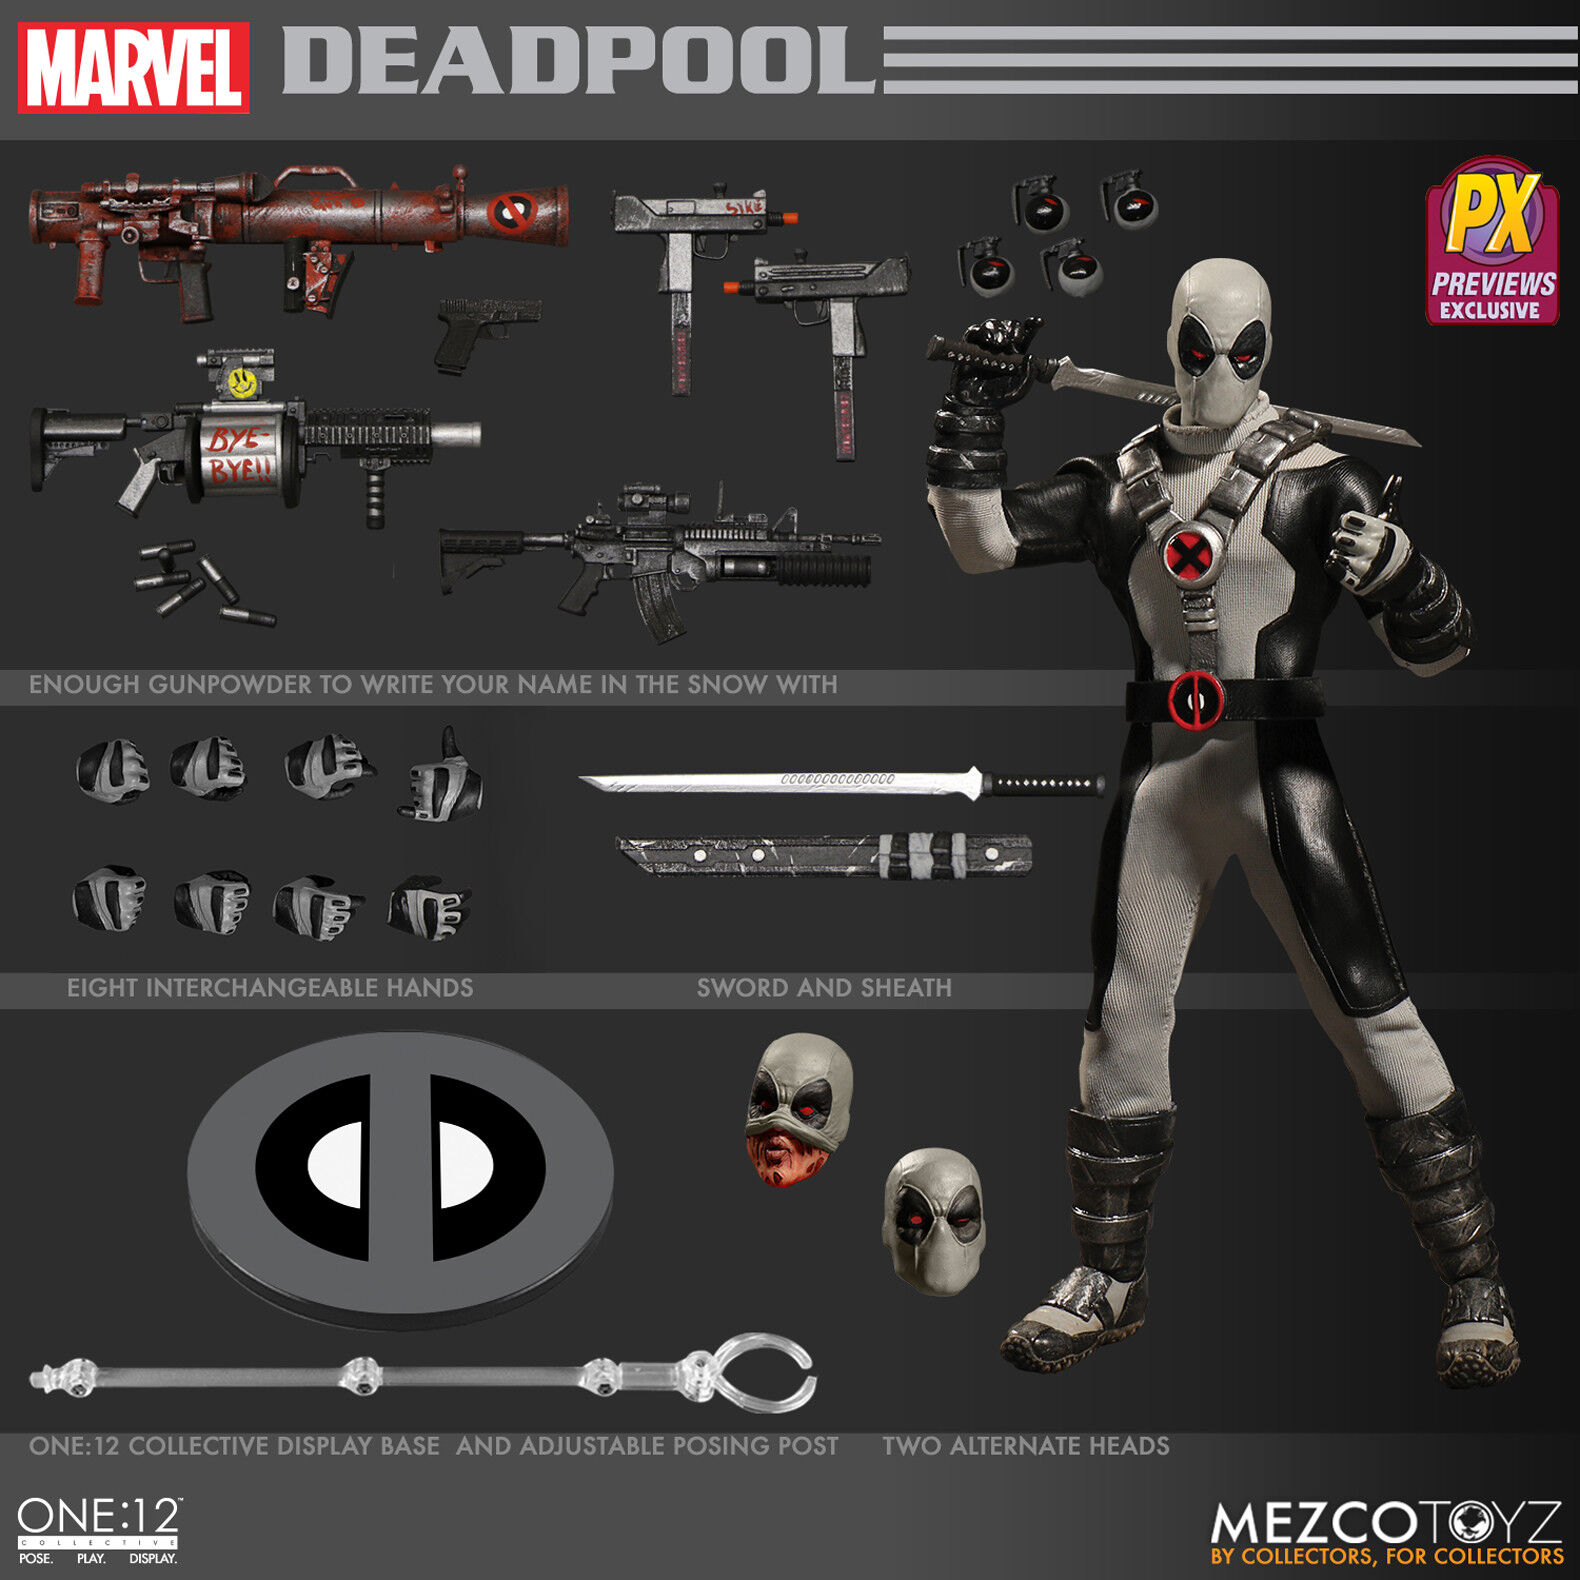 Eine kollektive marvel fr deadpool x - force 6  12